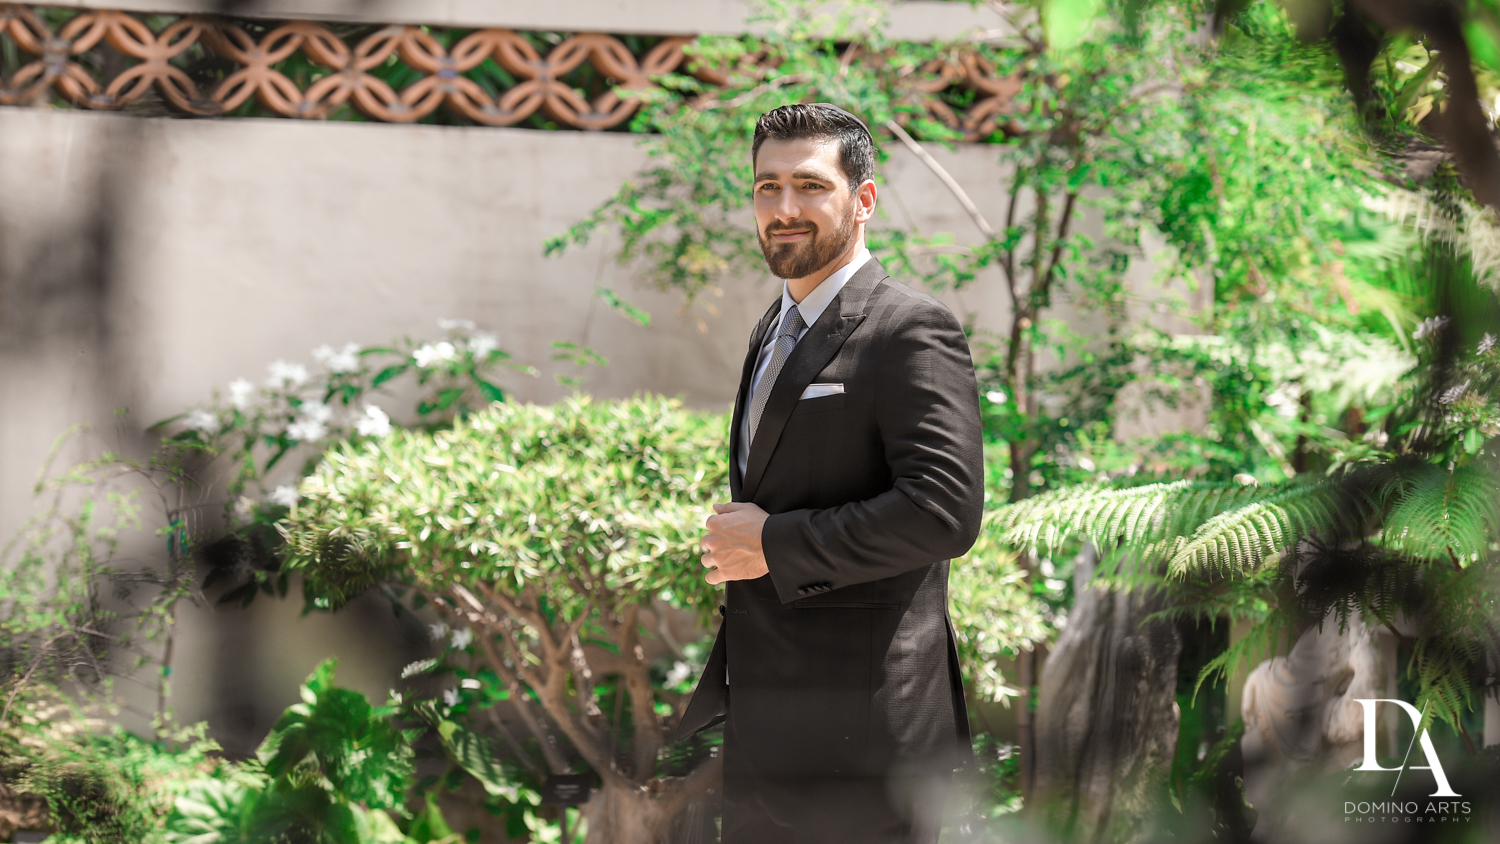 groom portrait at Vintage Garden Wedding at Flagler Museum Palm Beach by Domino Arts Photography